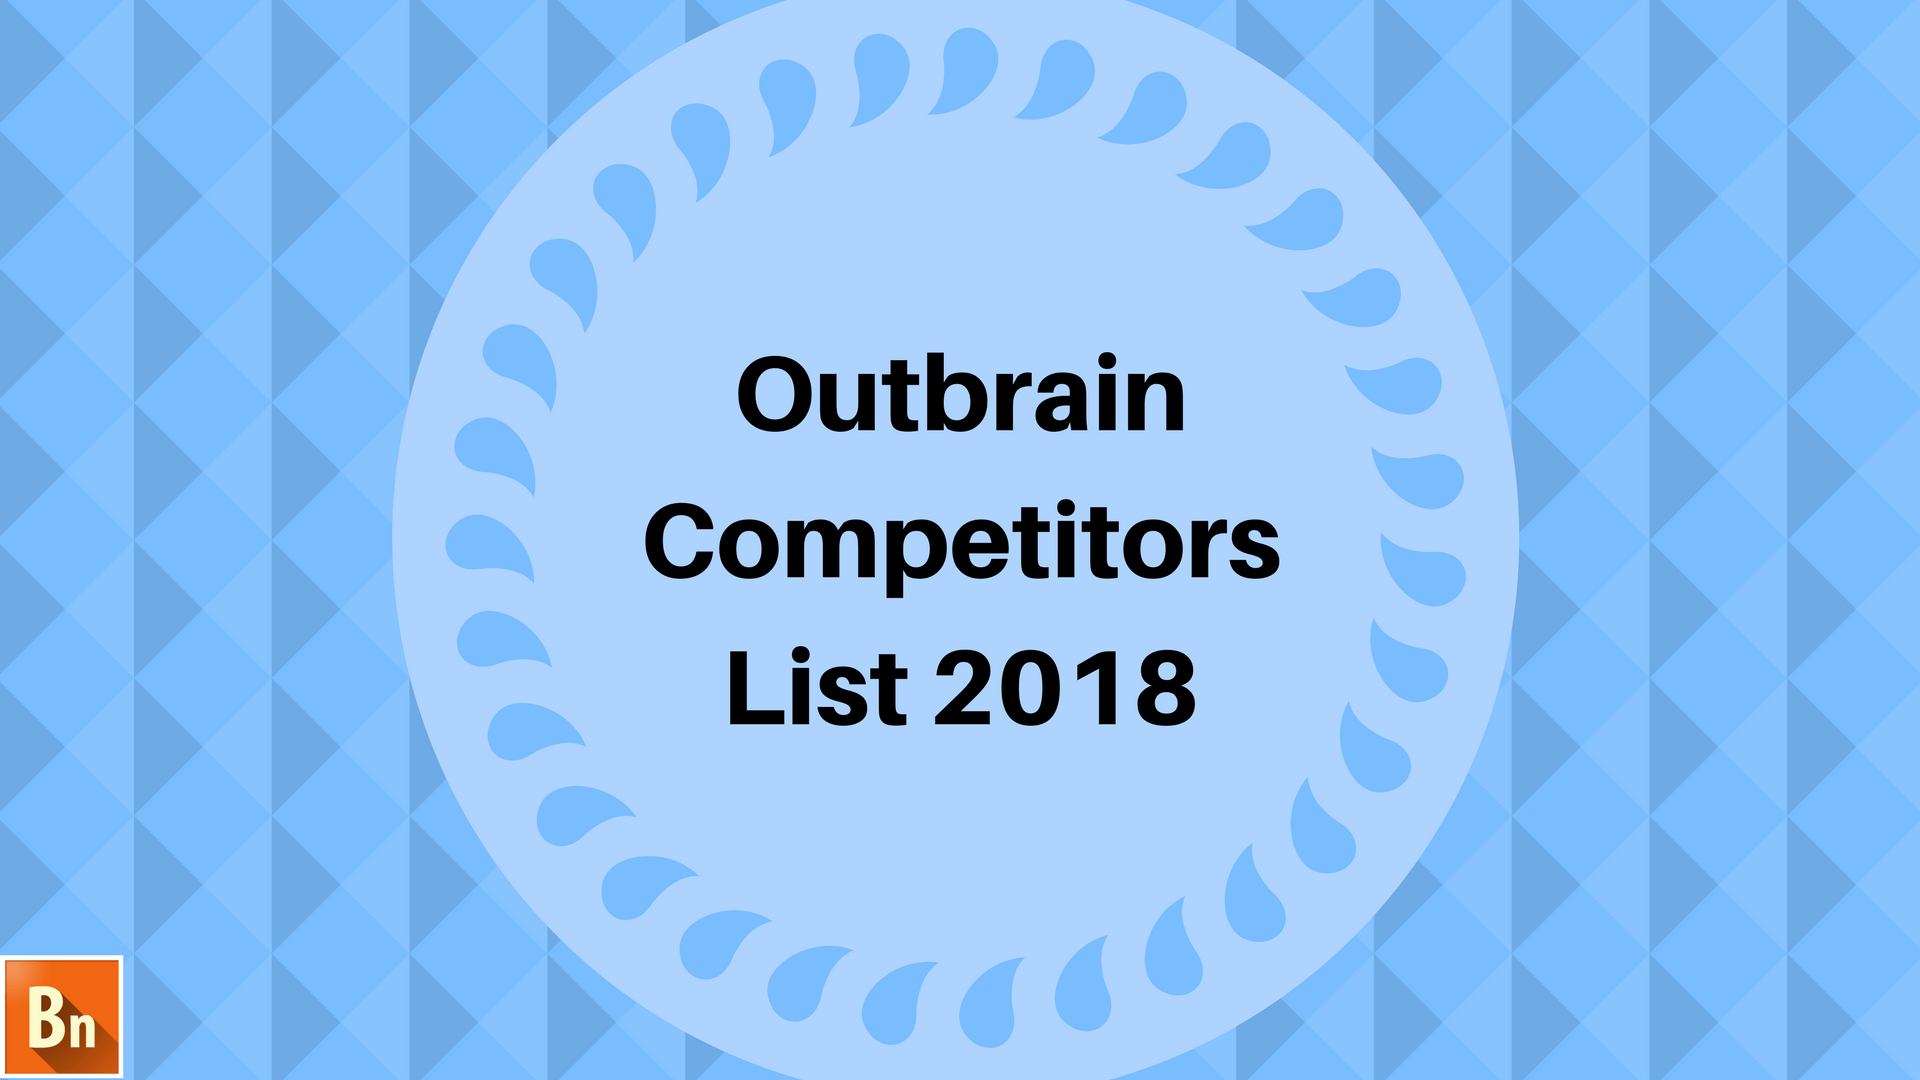 10+ Outbrain Competitors List of 2019